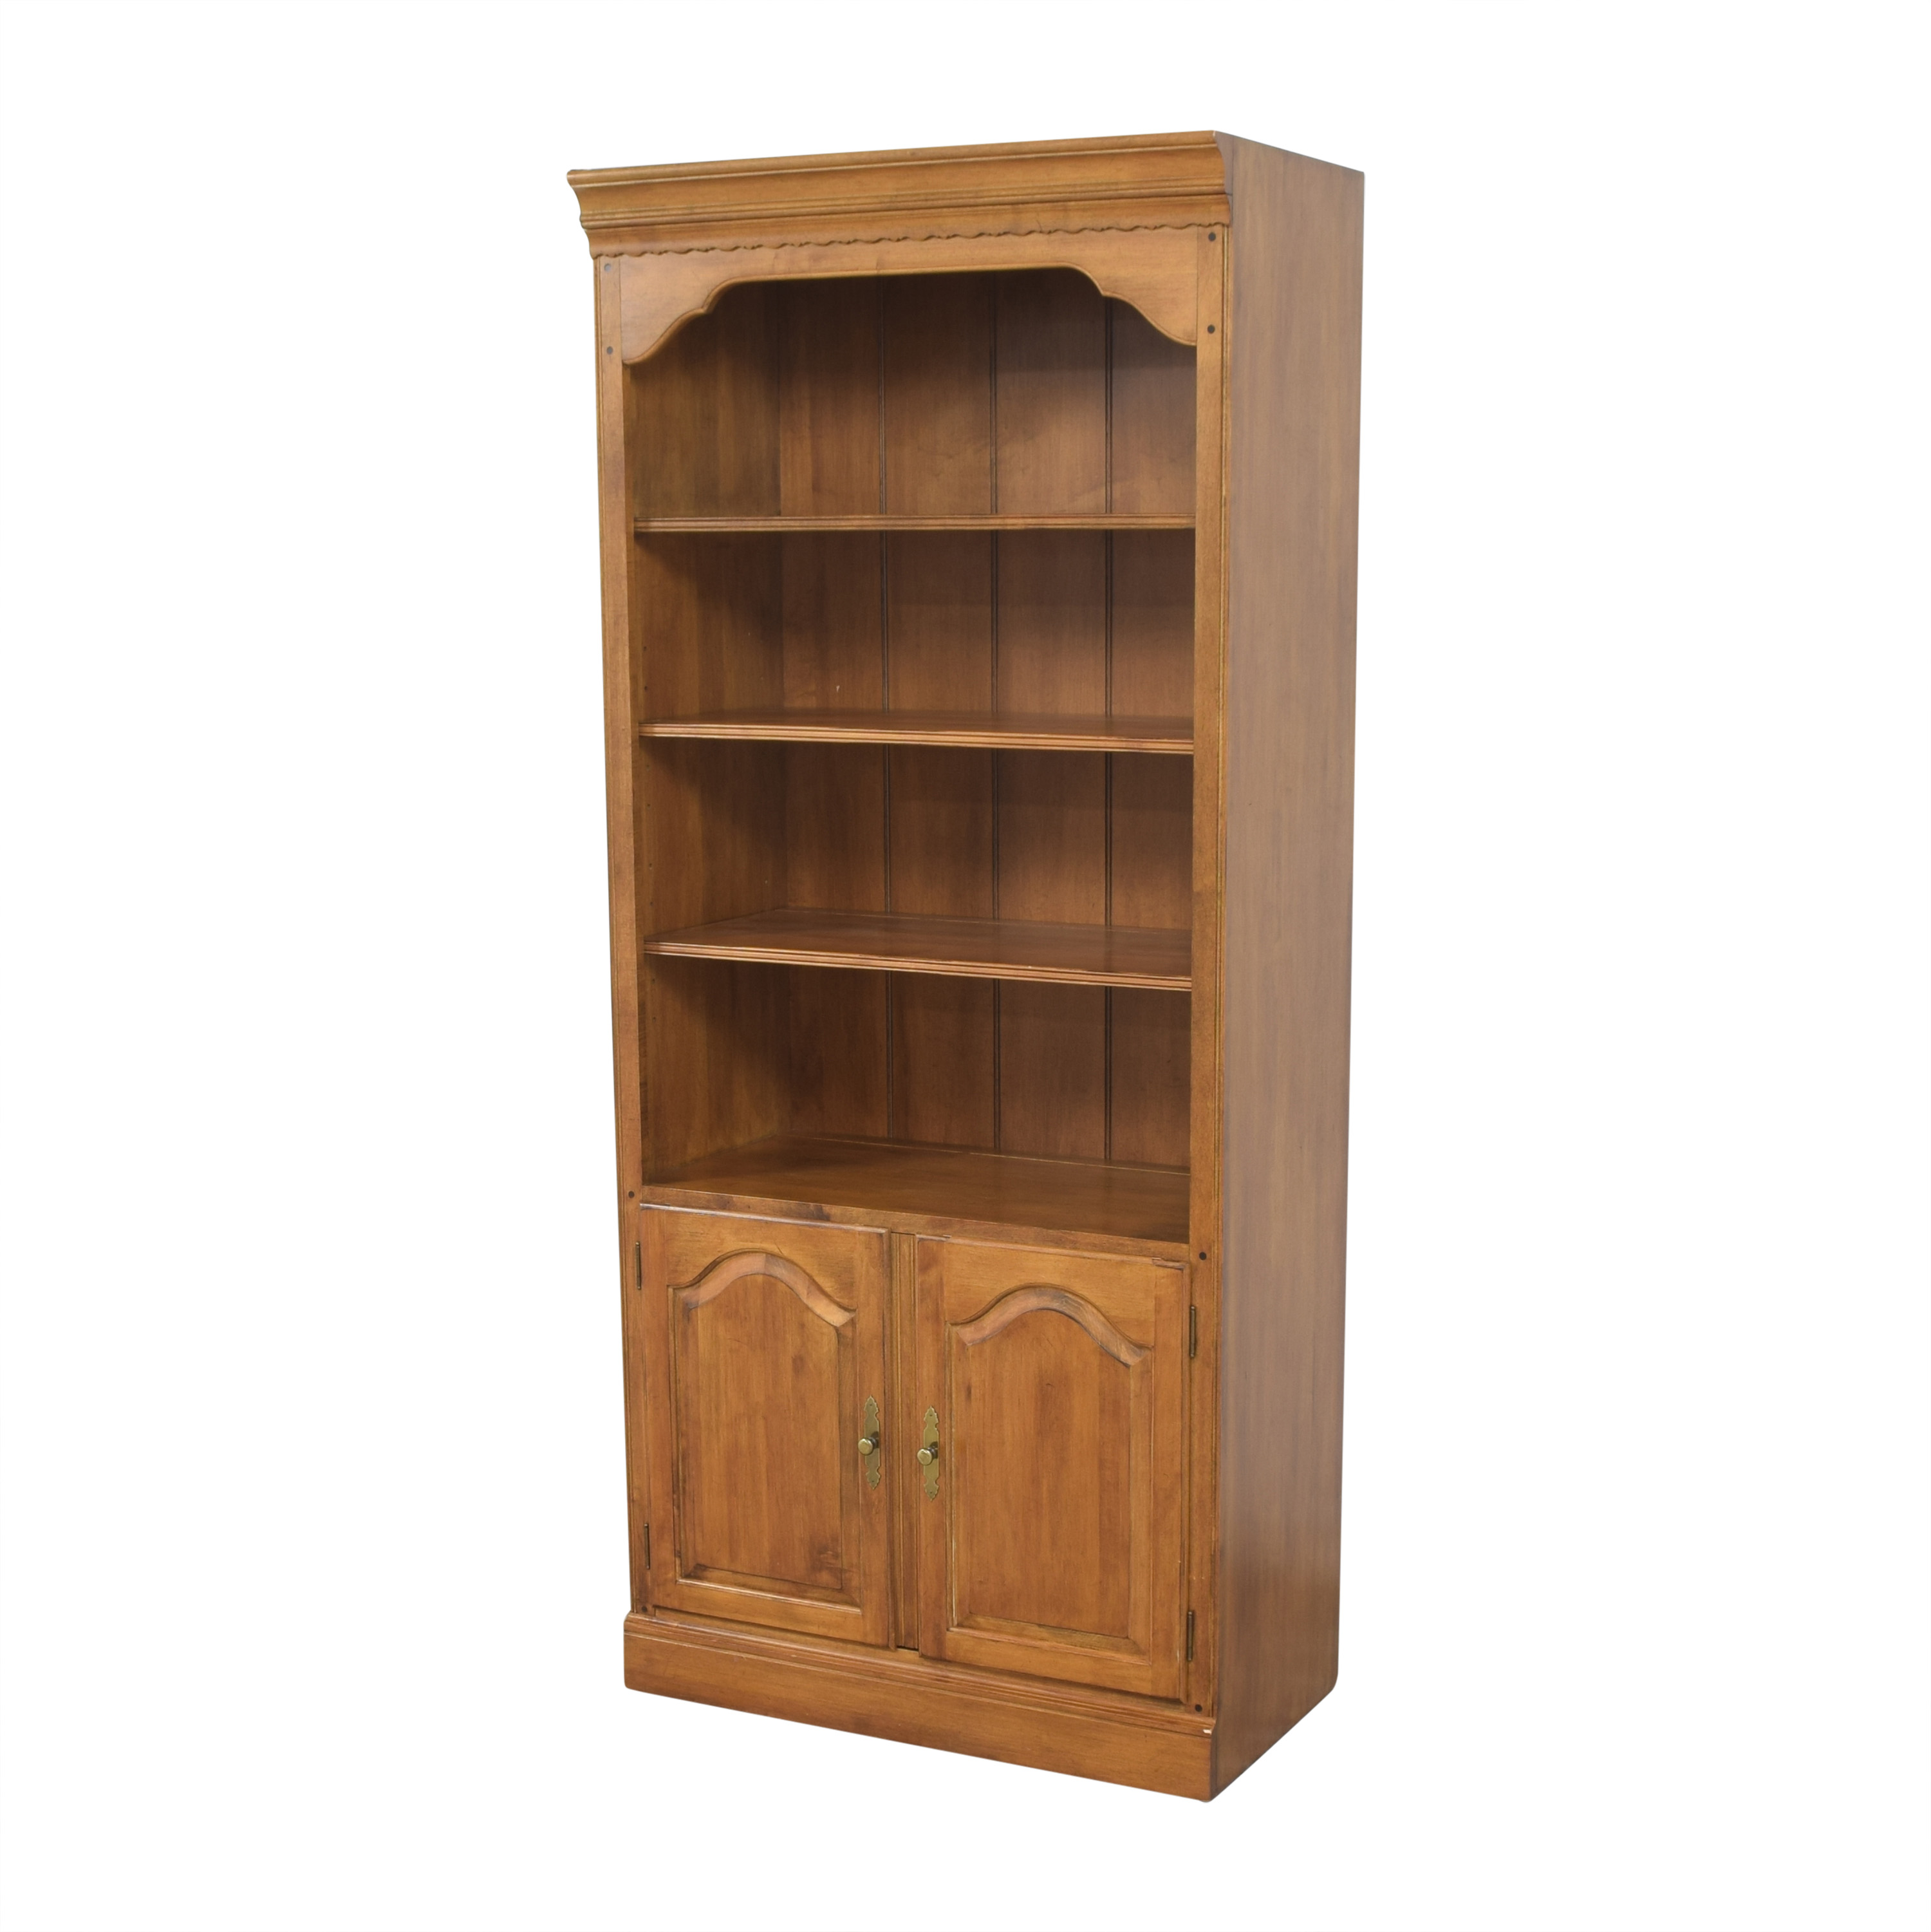 Ethan Allen Ethan Allen Circa 1776 Collection Bookcase with Cabinet nyc